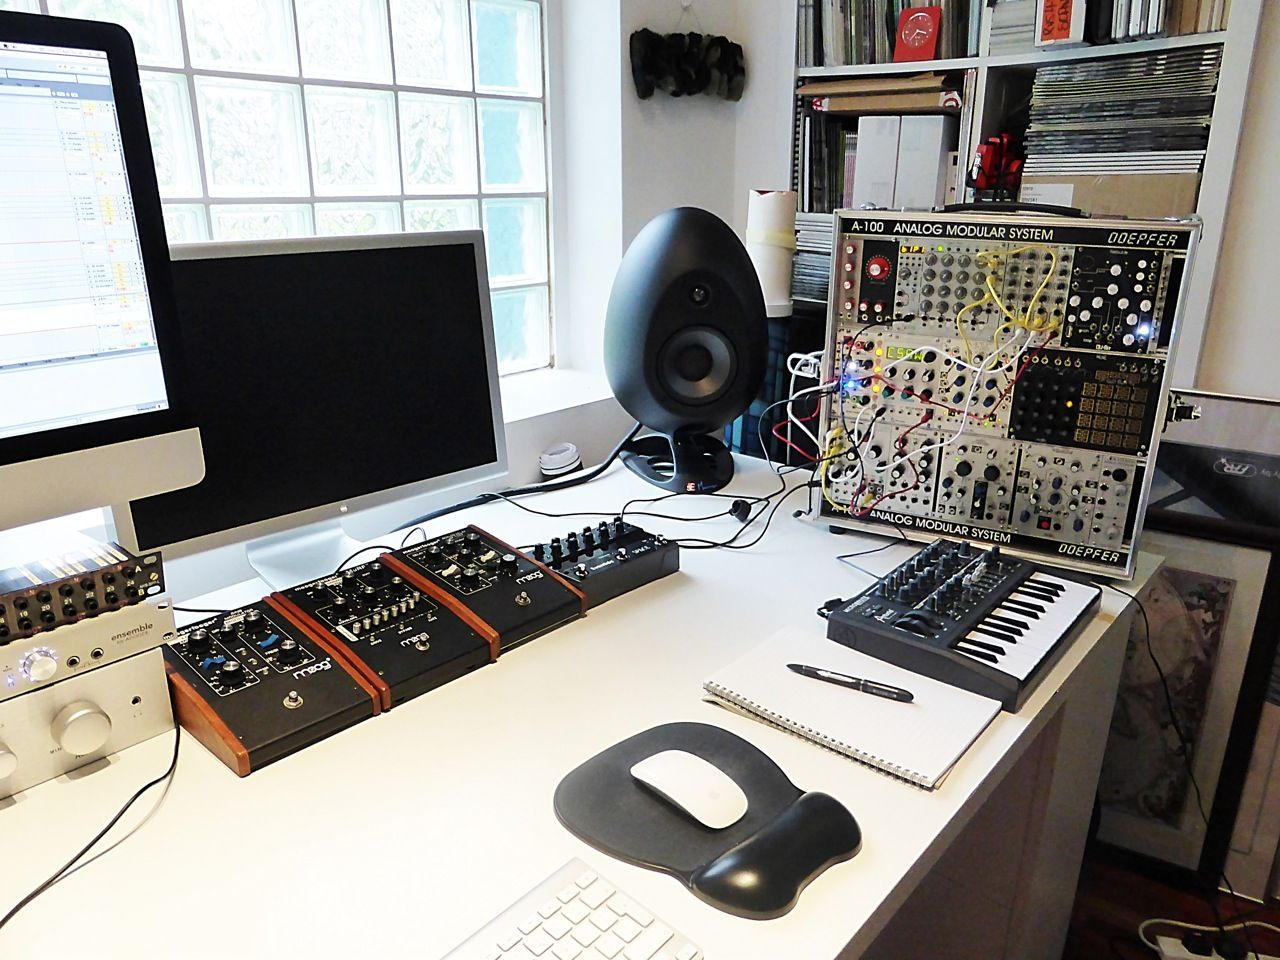 Phenomenal 17 Best Images About Home Studio Setups On Pinterest Music Rooms Largest Home Design Picture Inspirations Pitcheantrous